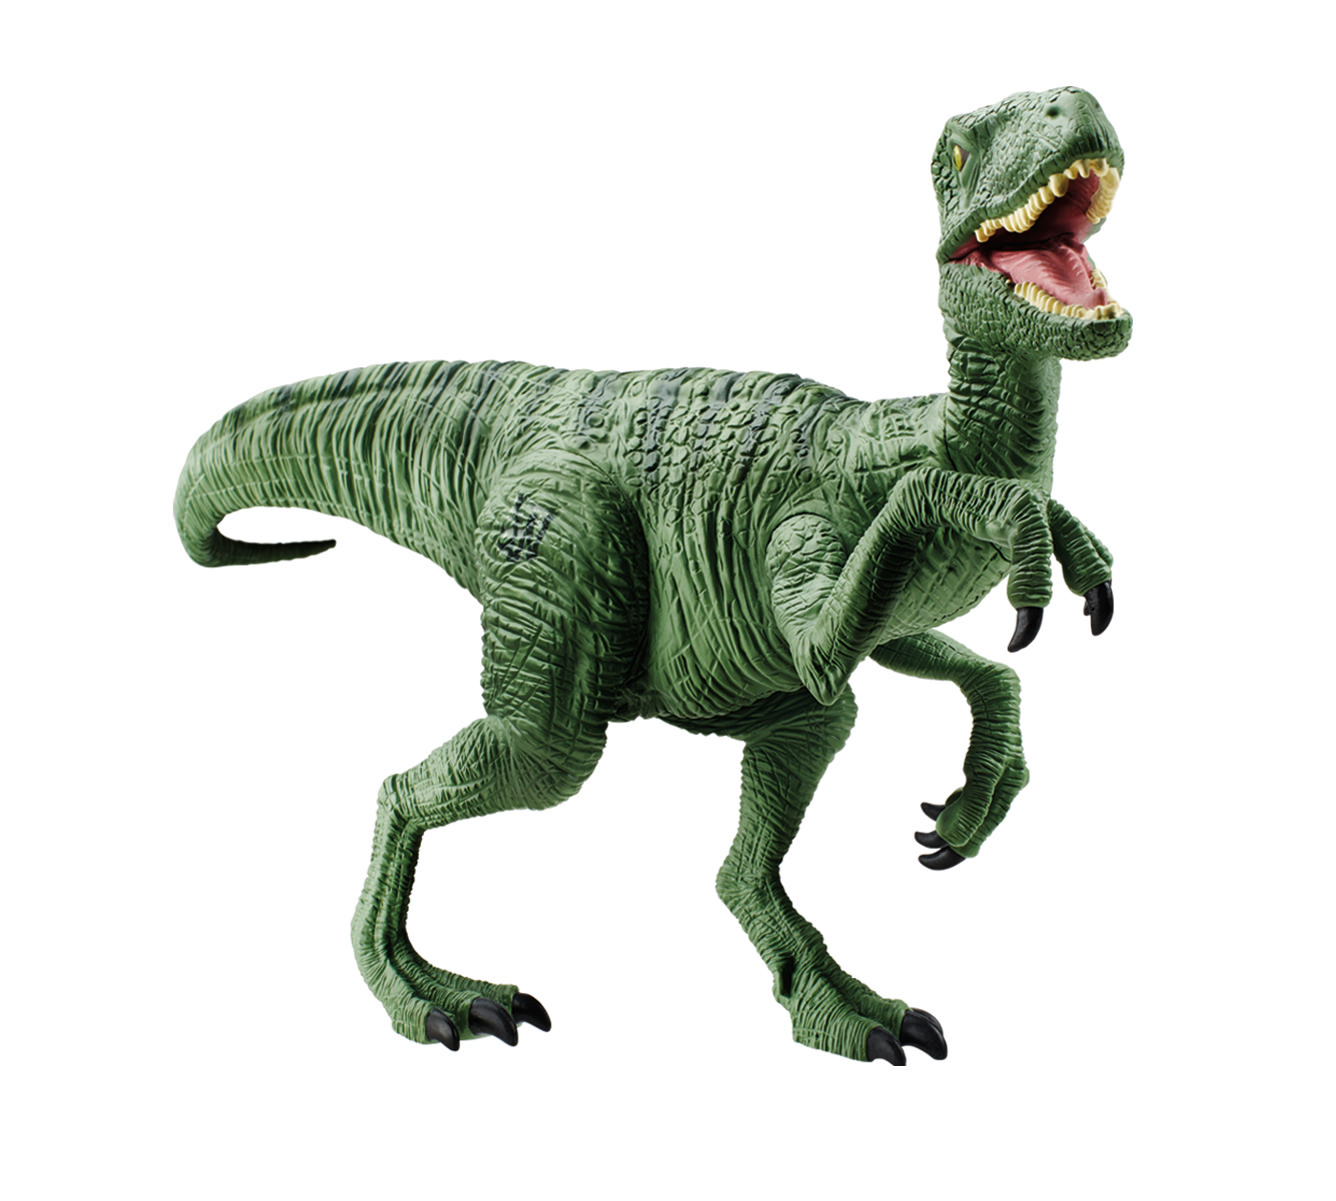 012 Jurassic World Toy Fair Nyc Hasbro Loose Boxed Images Needless Essentials Onlineneedless